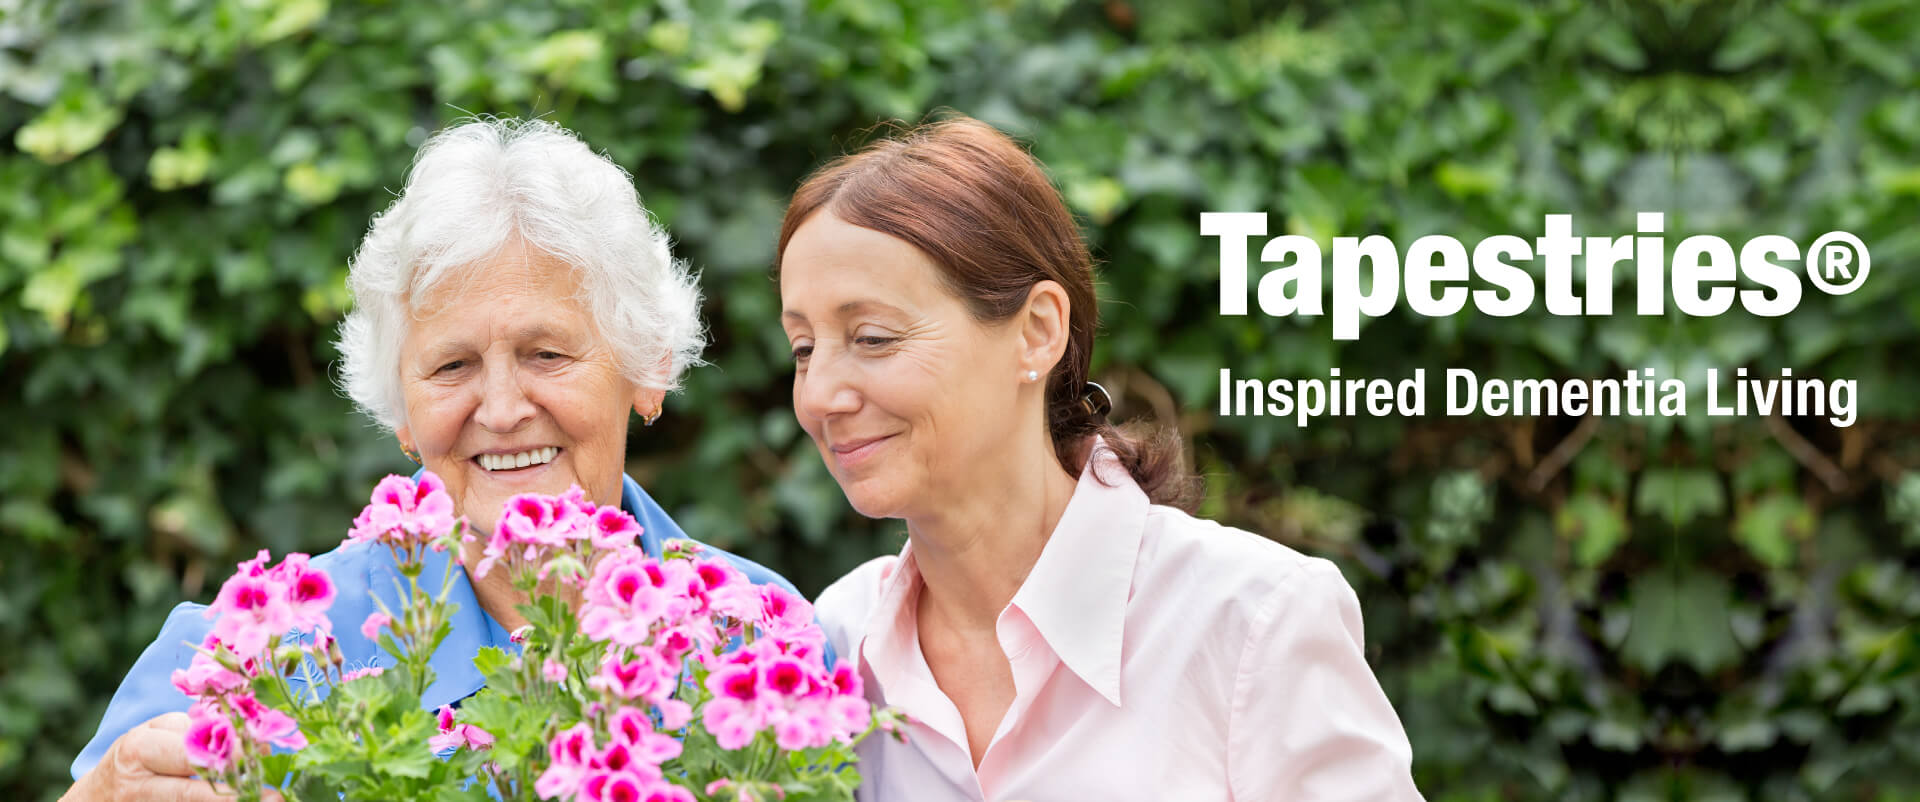 Tapestries® Memory Care, Alzheimer's & Dementia Support in Sussex County, NJ